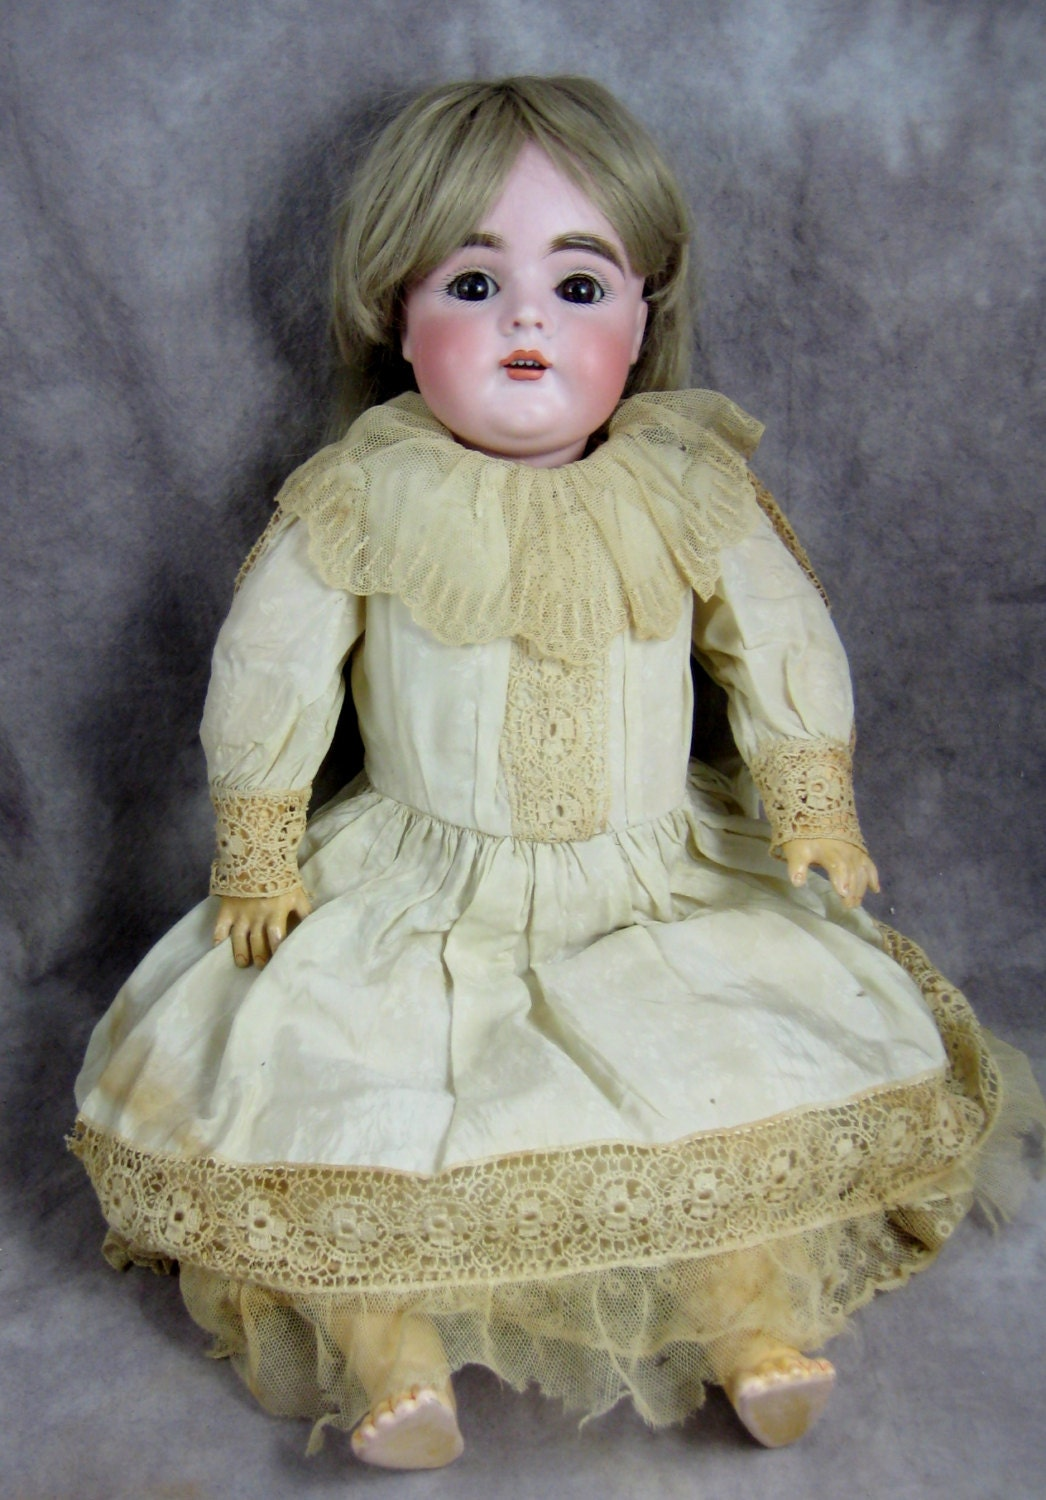 1892 Kestner Germany Doll 19 Original Clothing Bisque